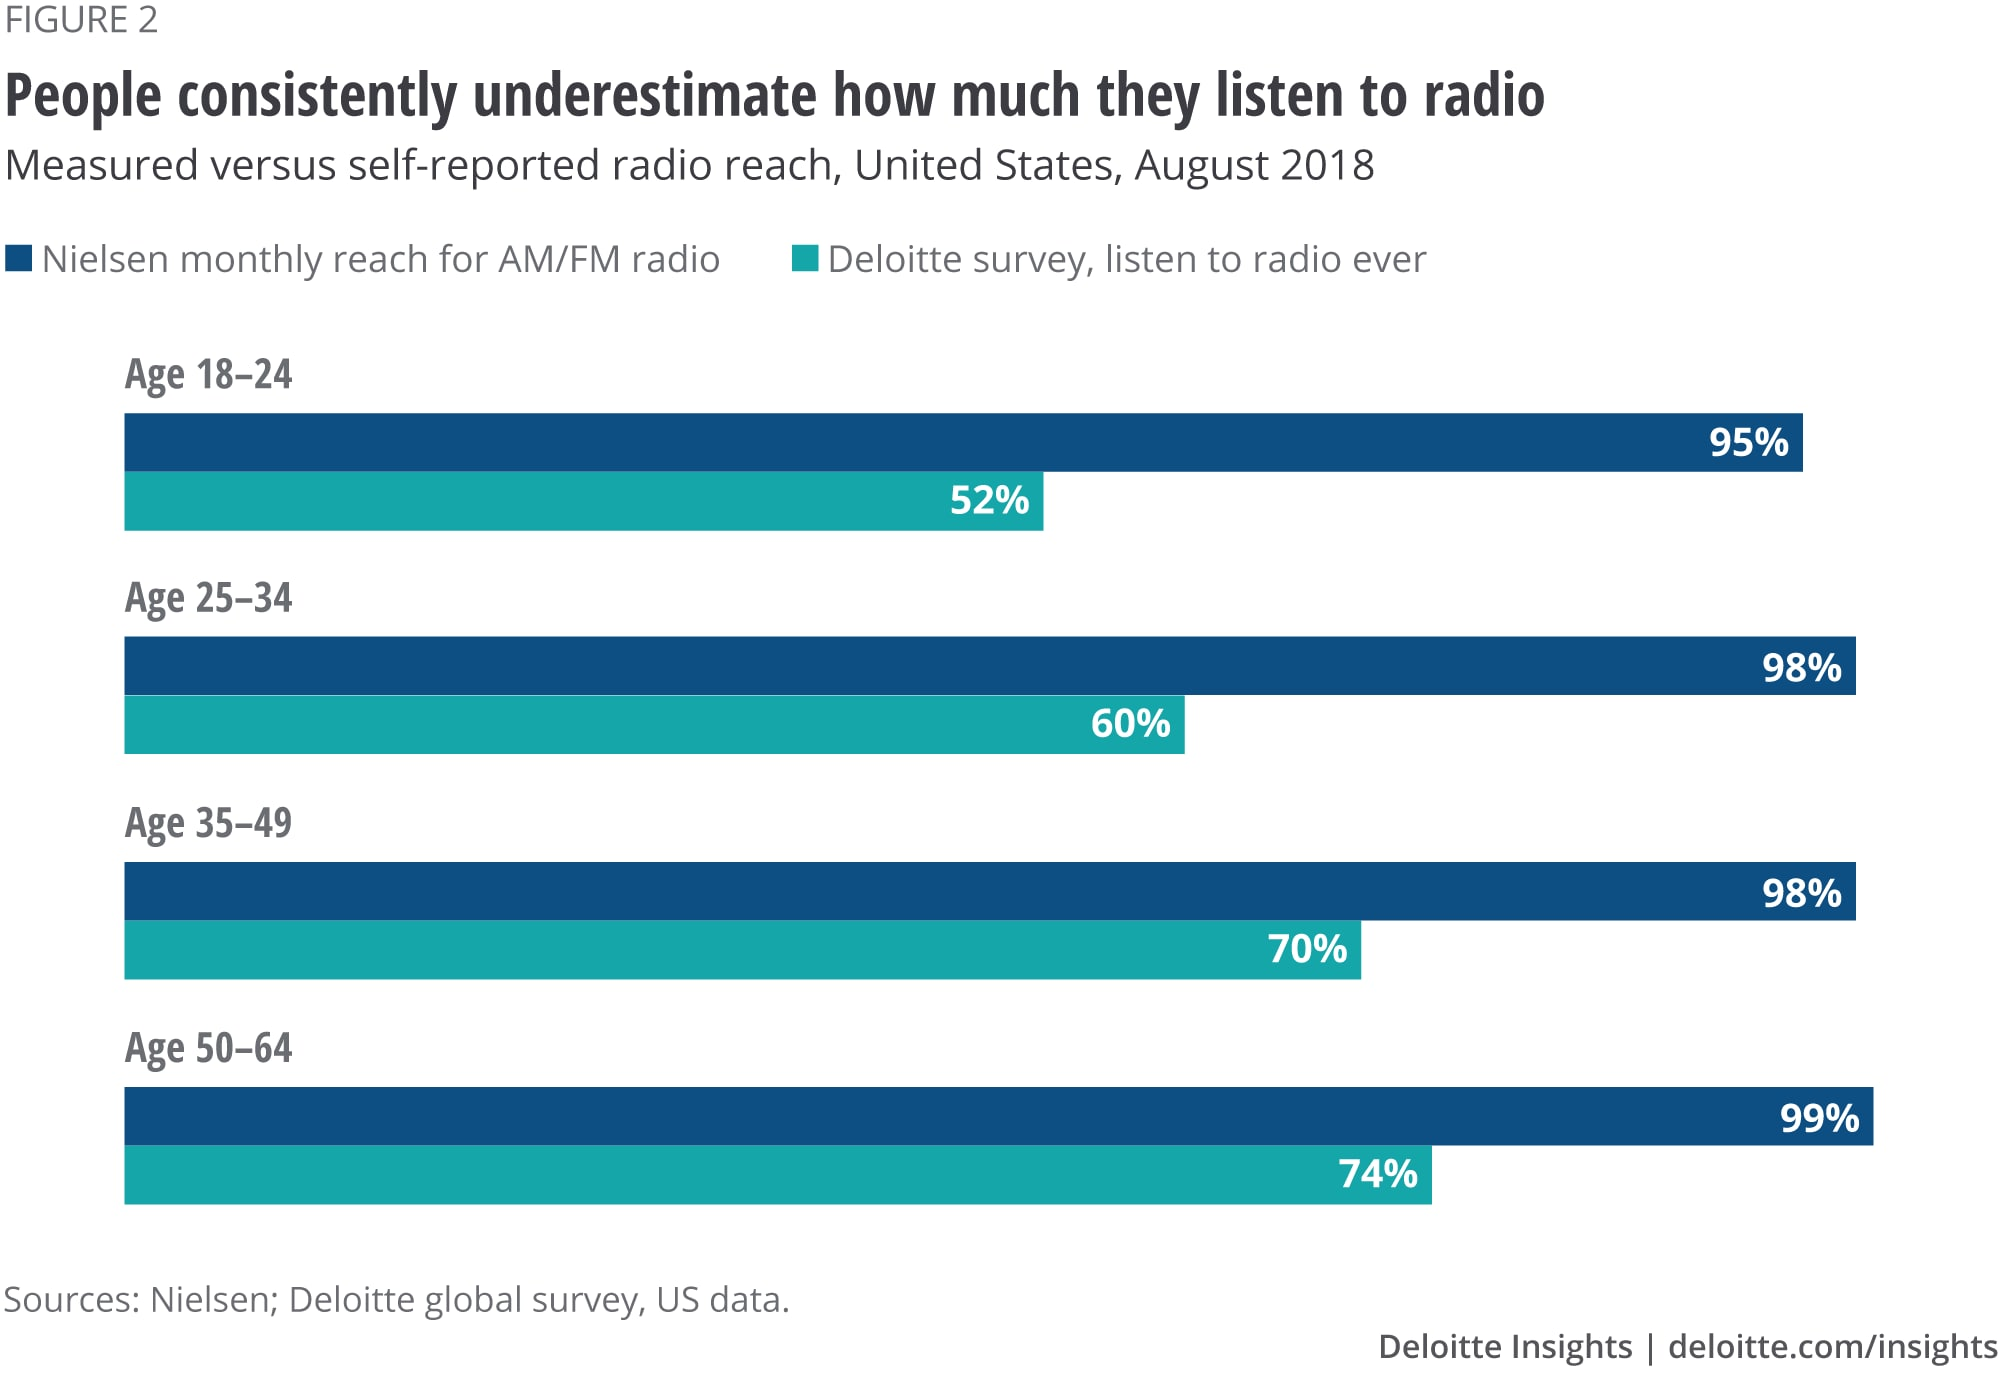 People consistently underestimate how much they listen to radio